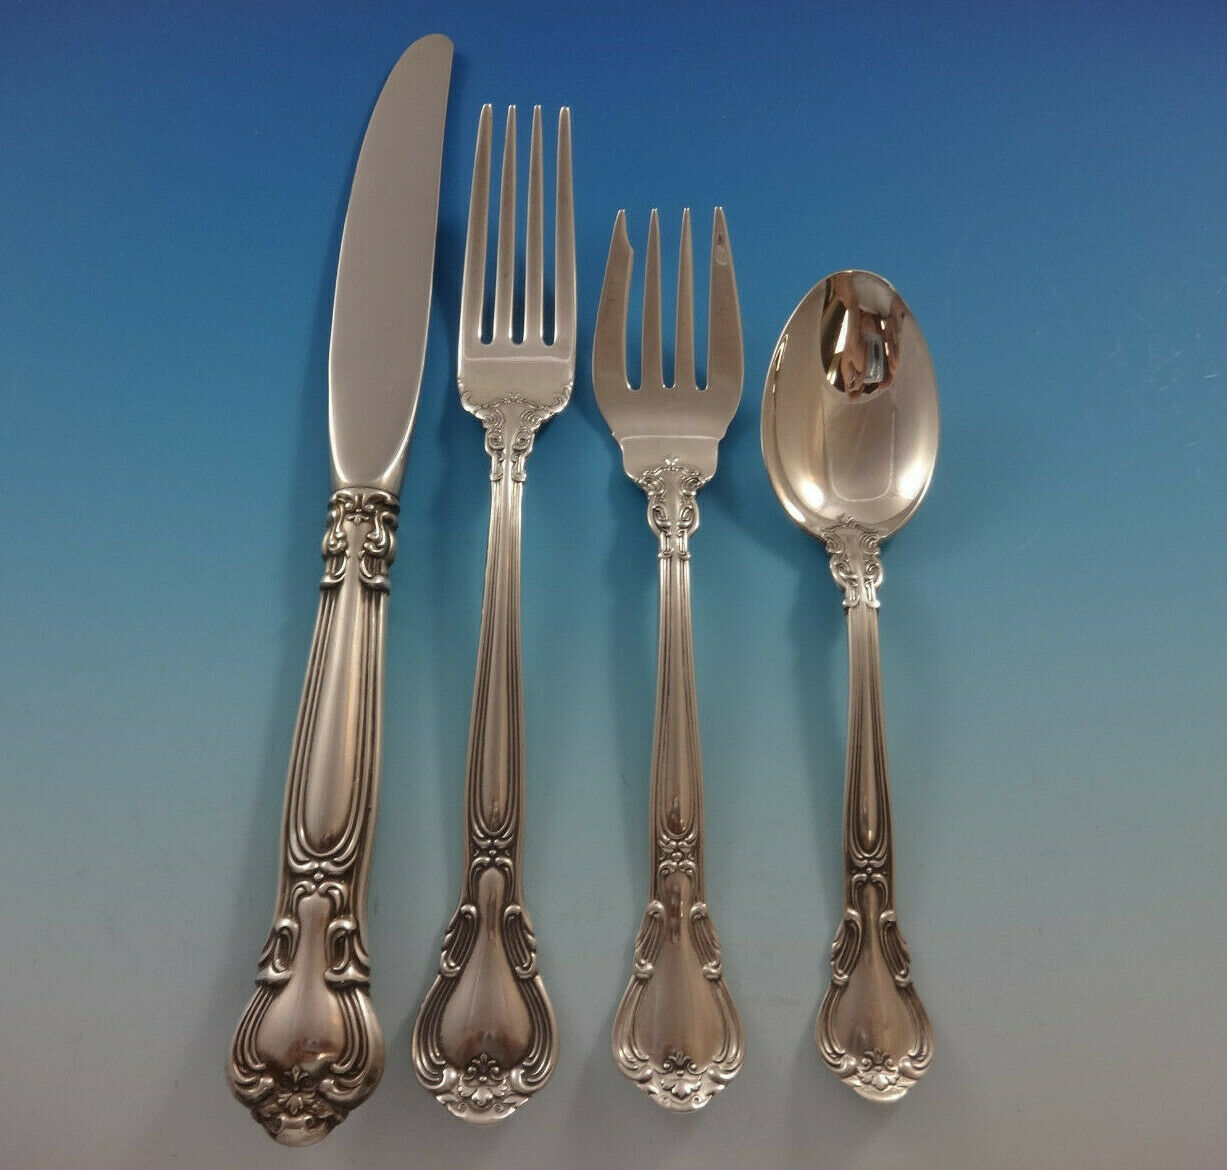 Chantilly by Gorham Sterling Silver Place Size Flatware Set 8 Service 42 Pcs image 4